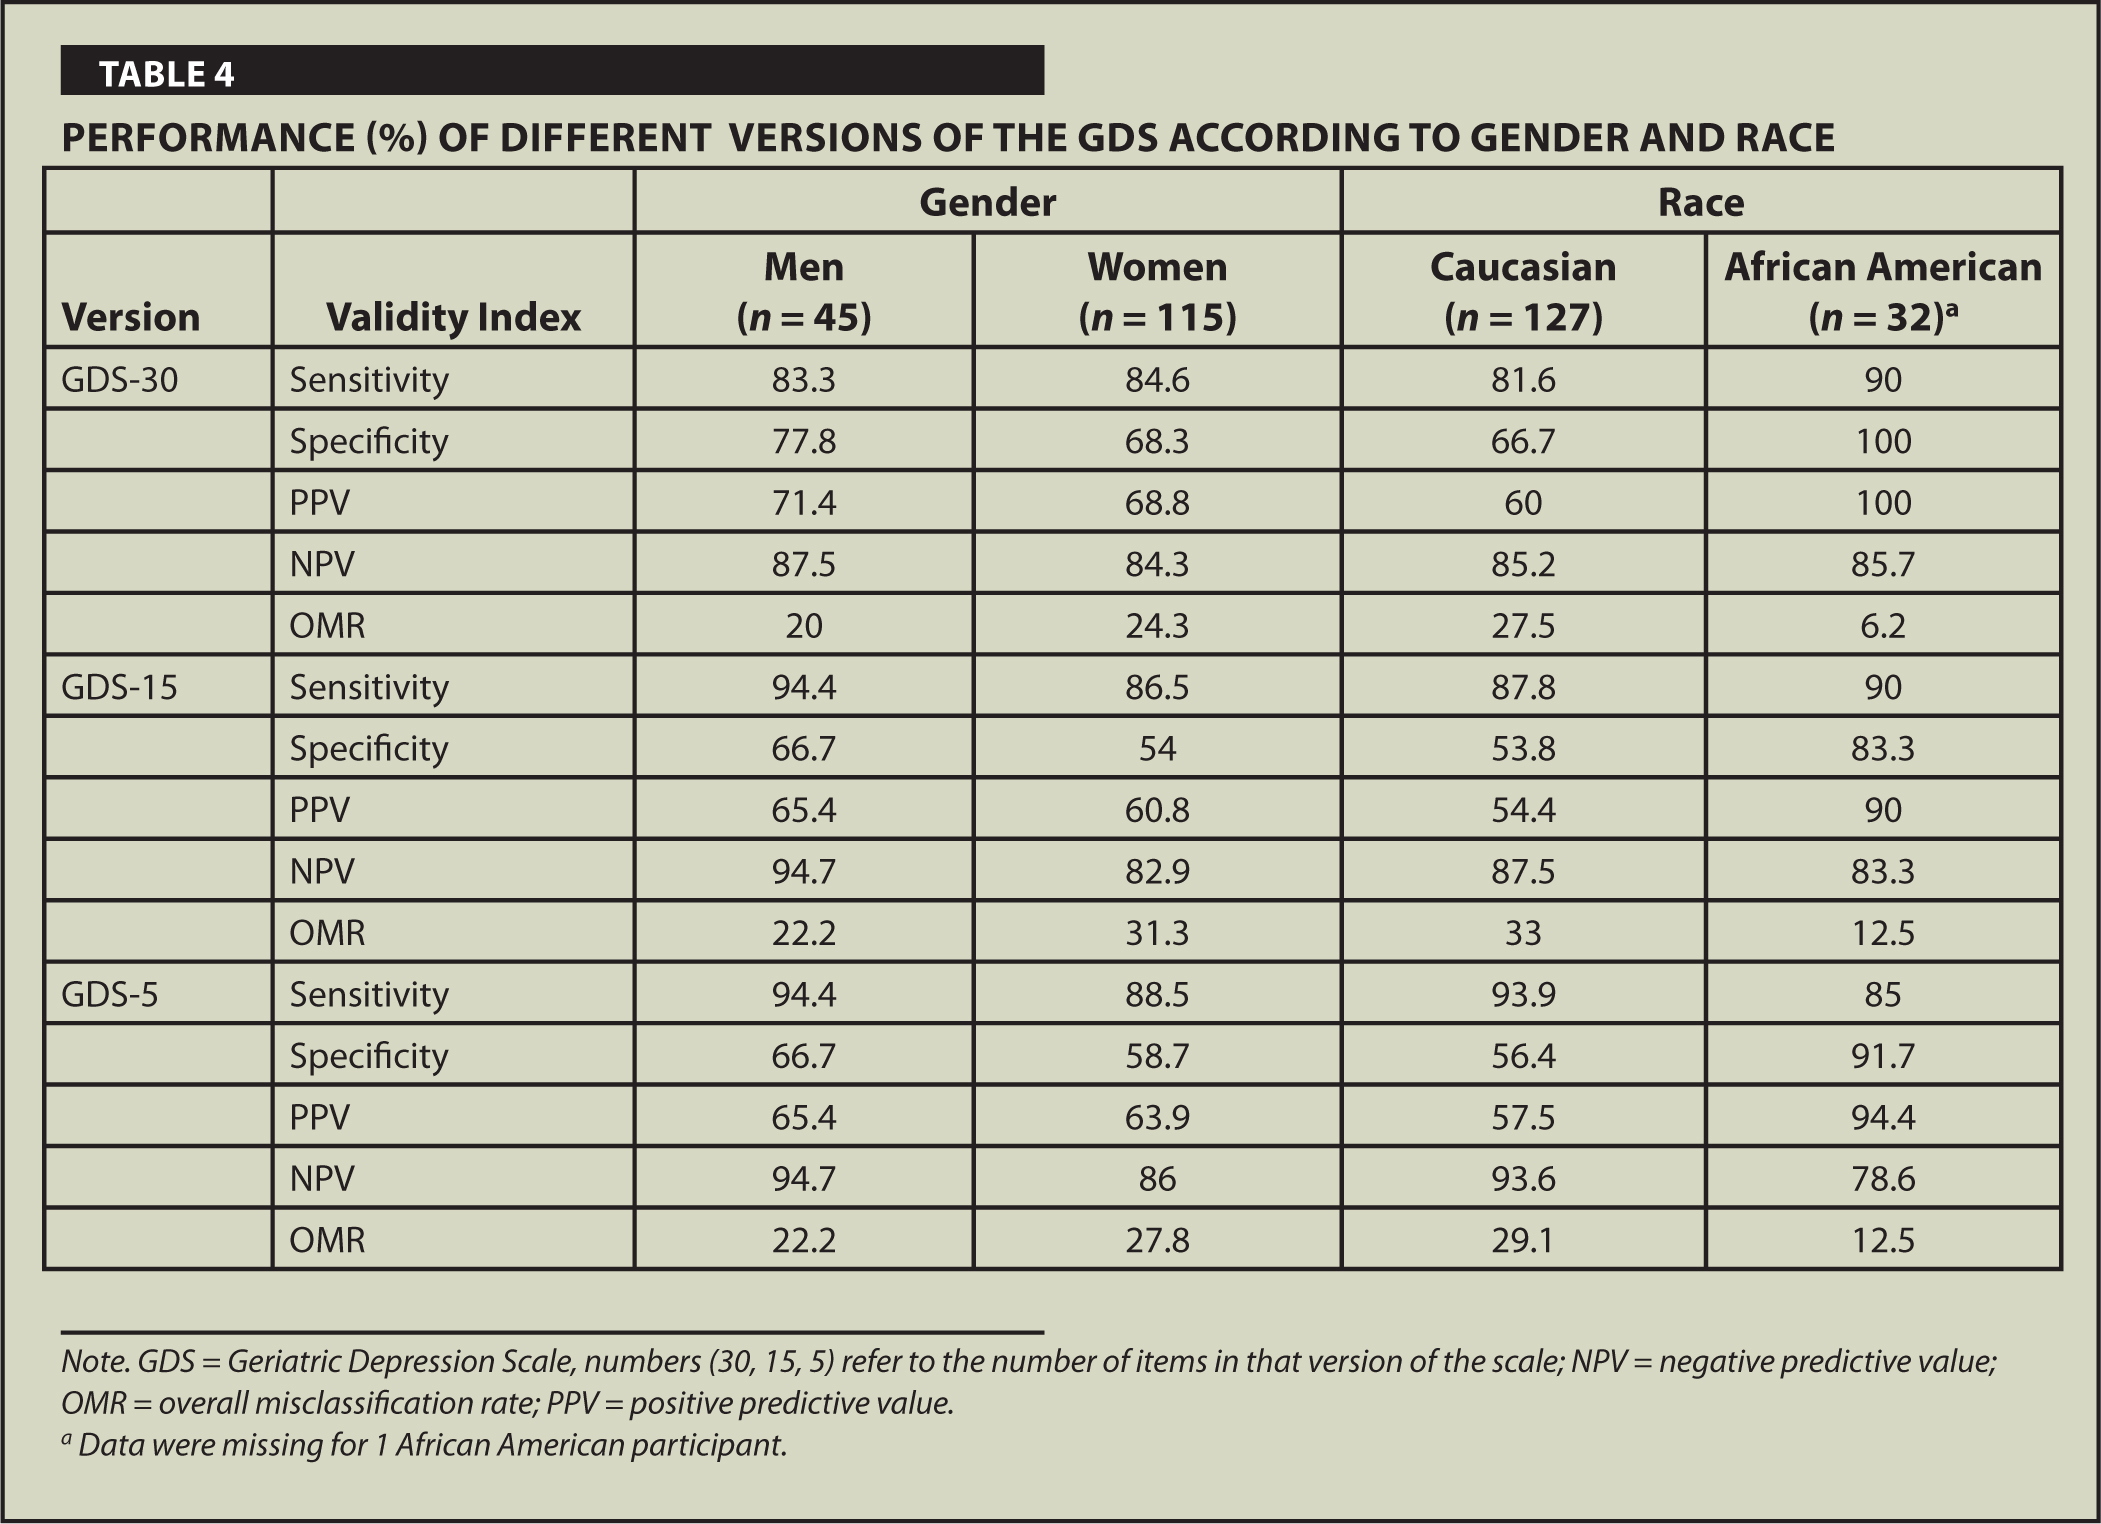 Performance (%) of Different Versions of the Gds According to Gender and Race